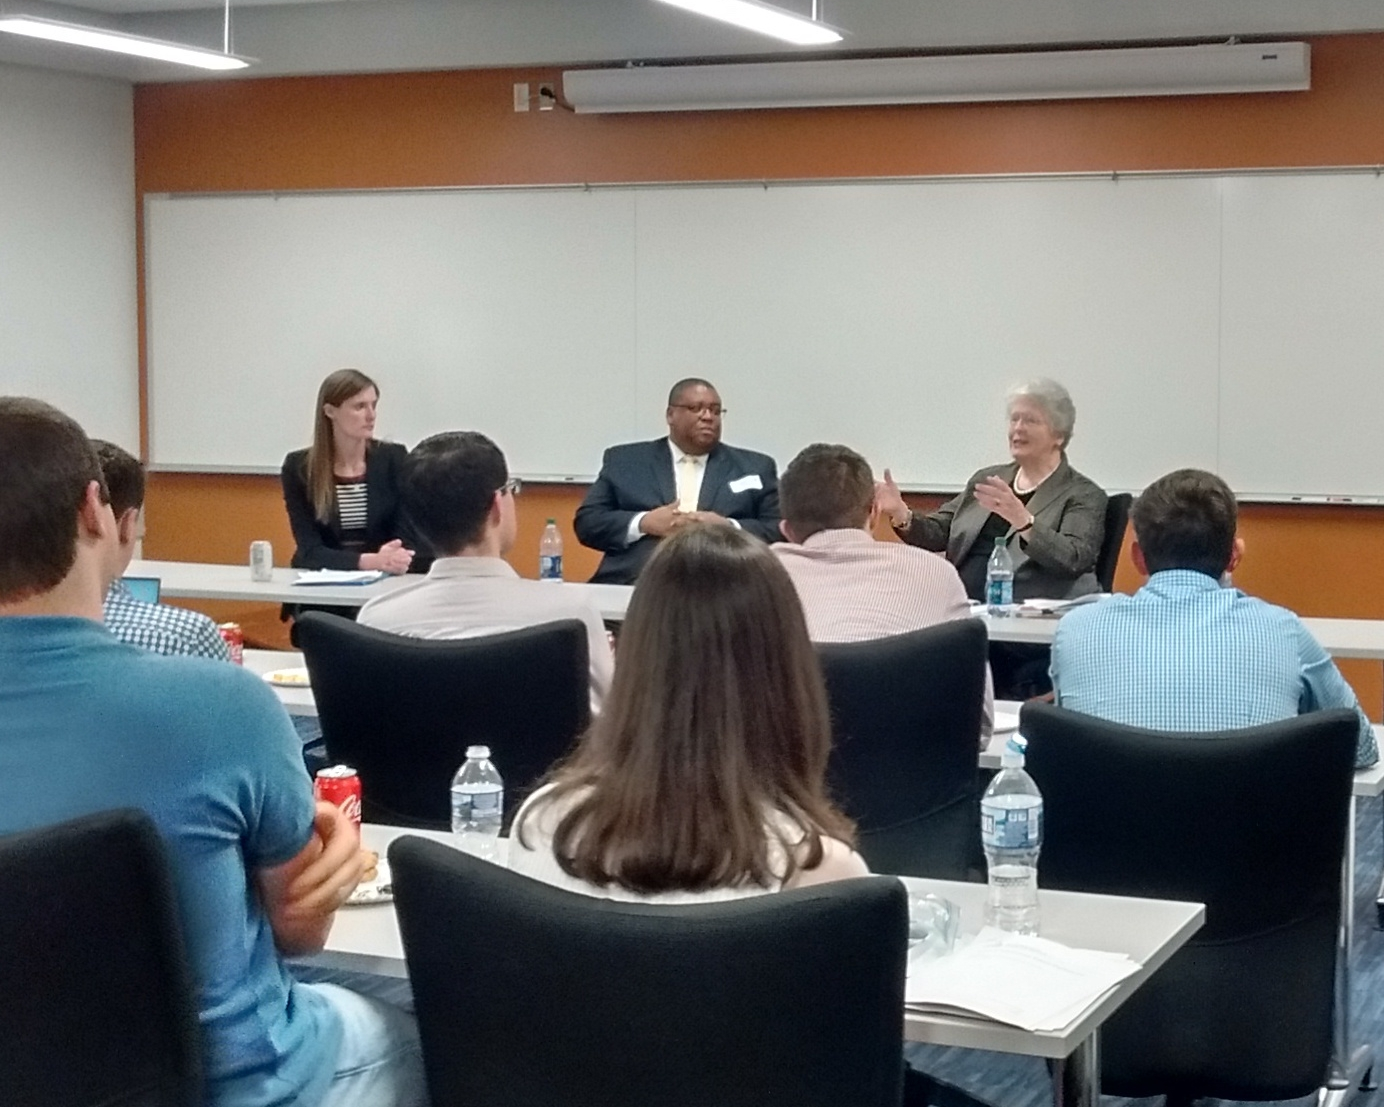 Institute Director Alex Givens (L) moderates a discussion with The Hon. David Strickland (C) and The Hon. Joan Claybrook (R), two former Administrators of the National Highway Traffic Safety Administration.